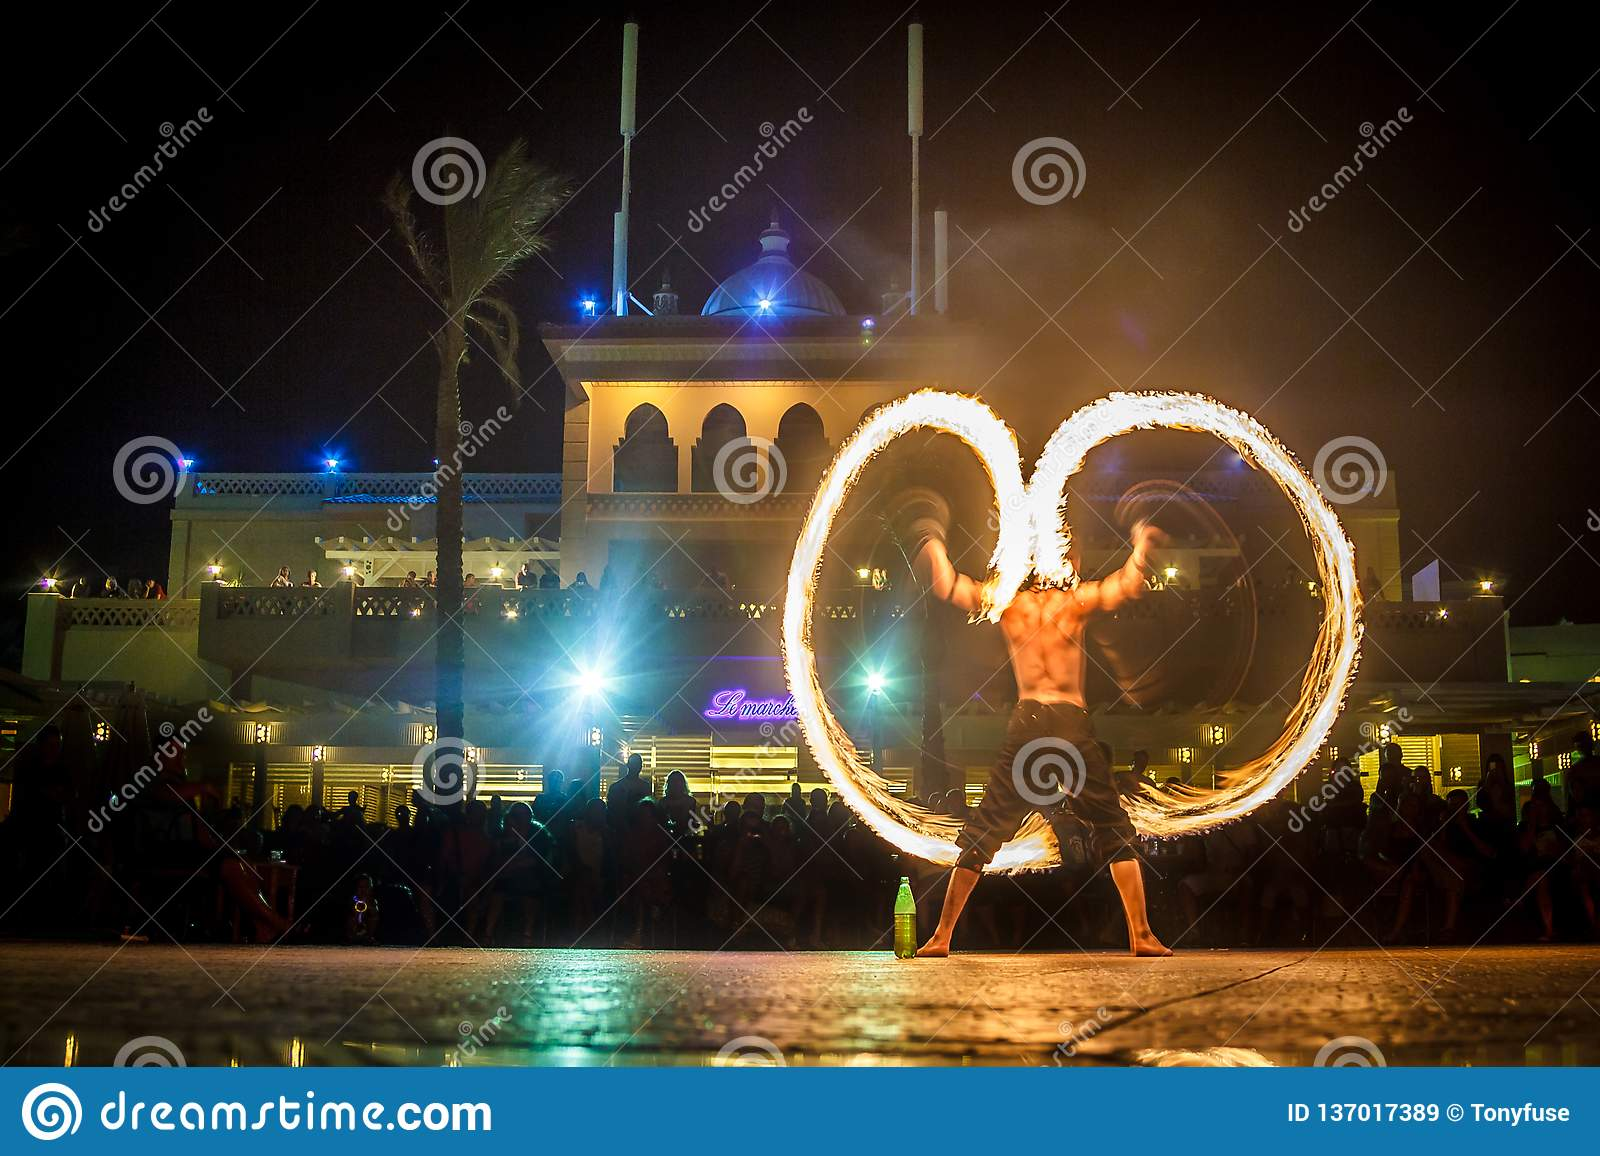 Night performance fire show in front of a crowd of people